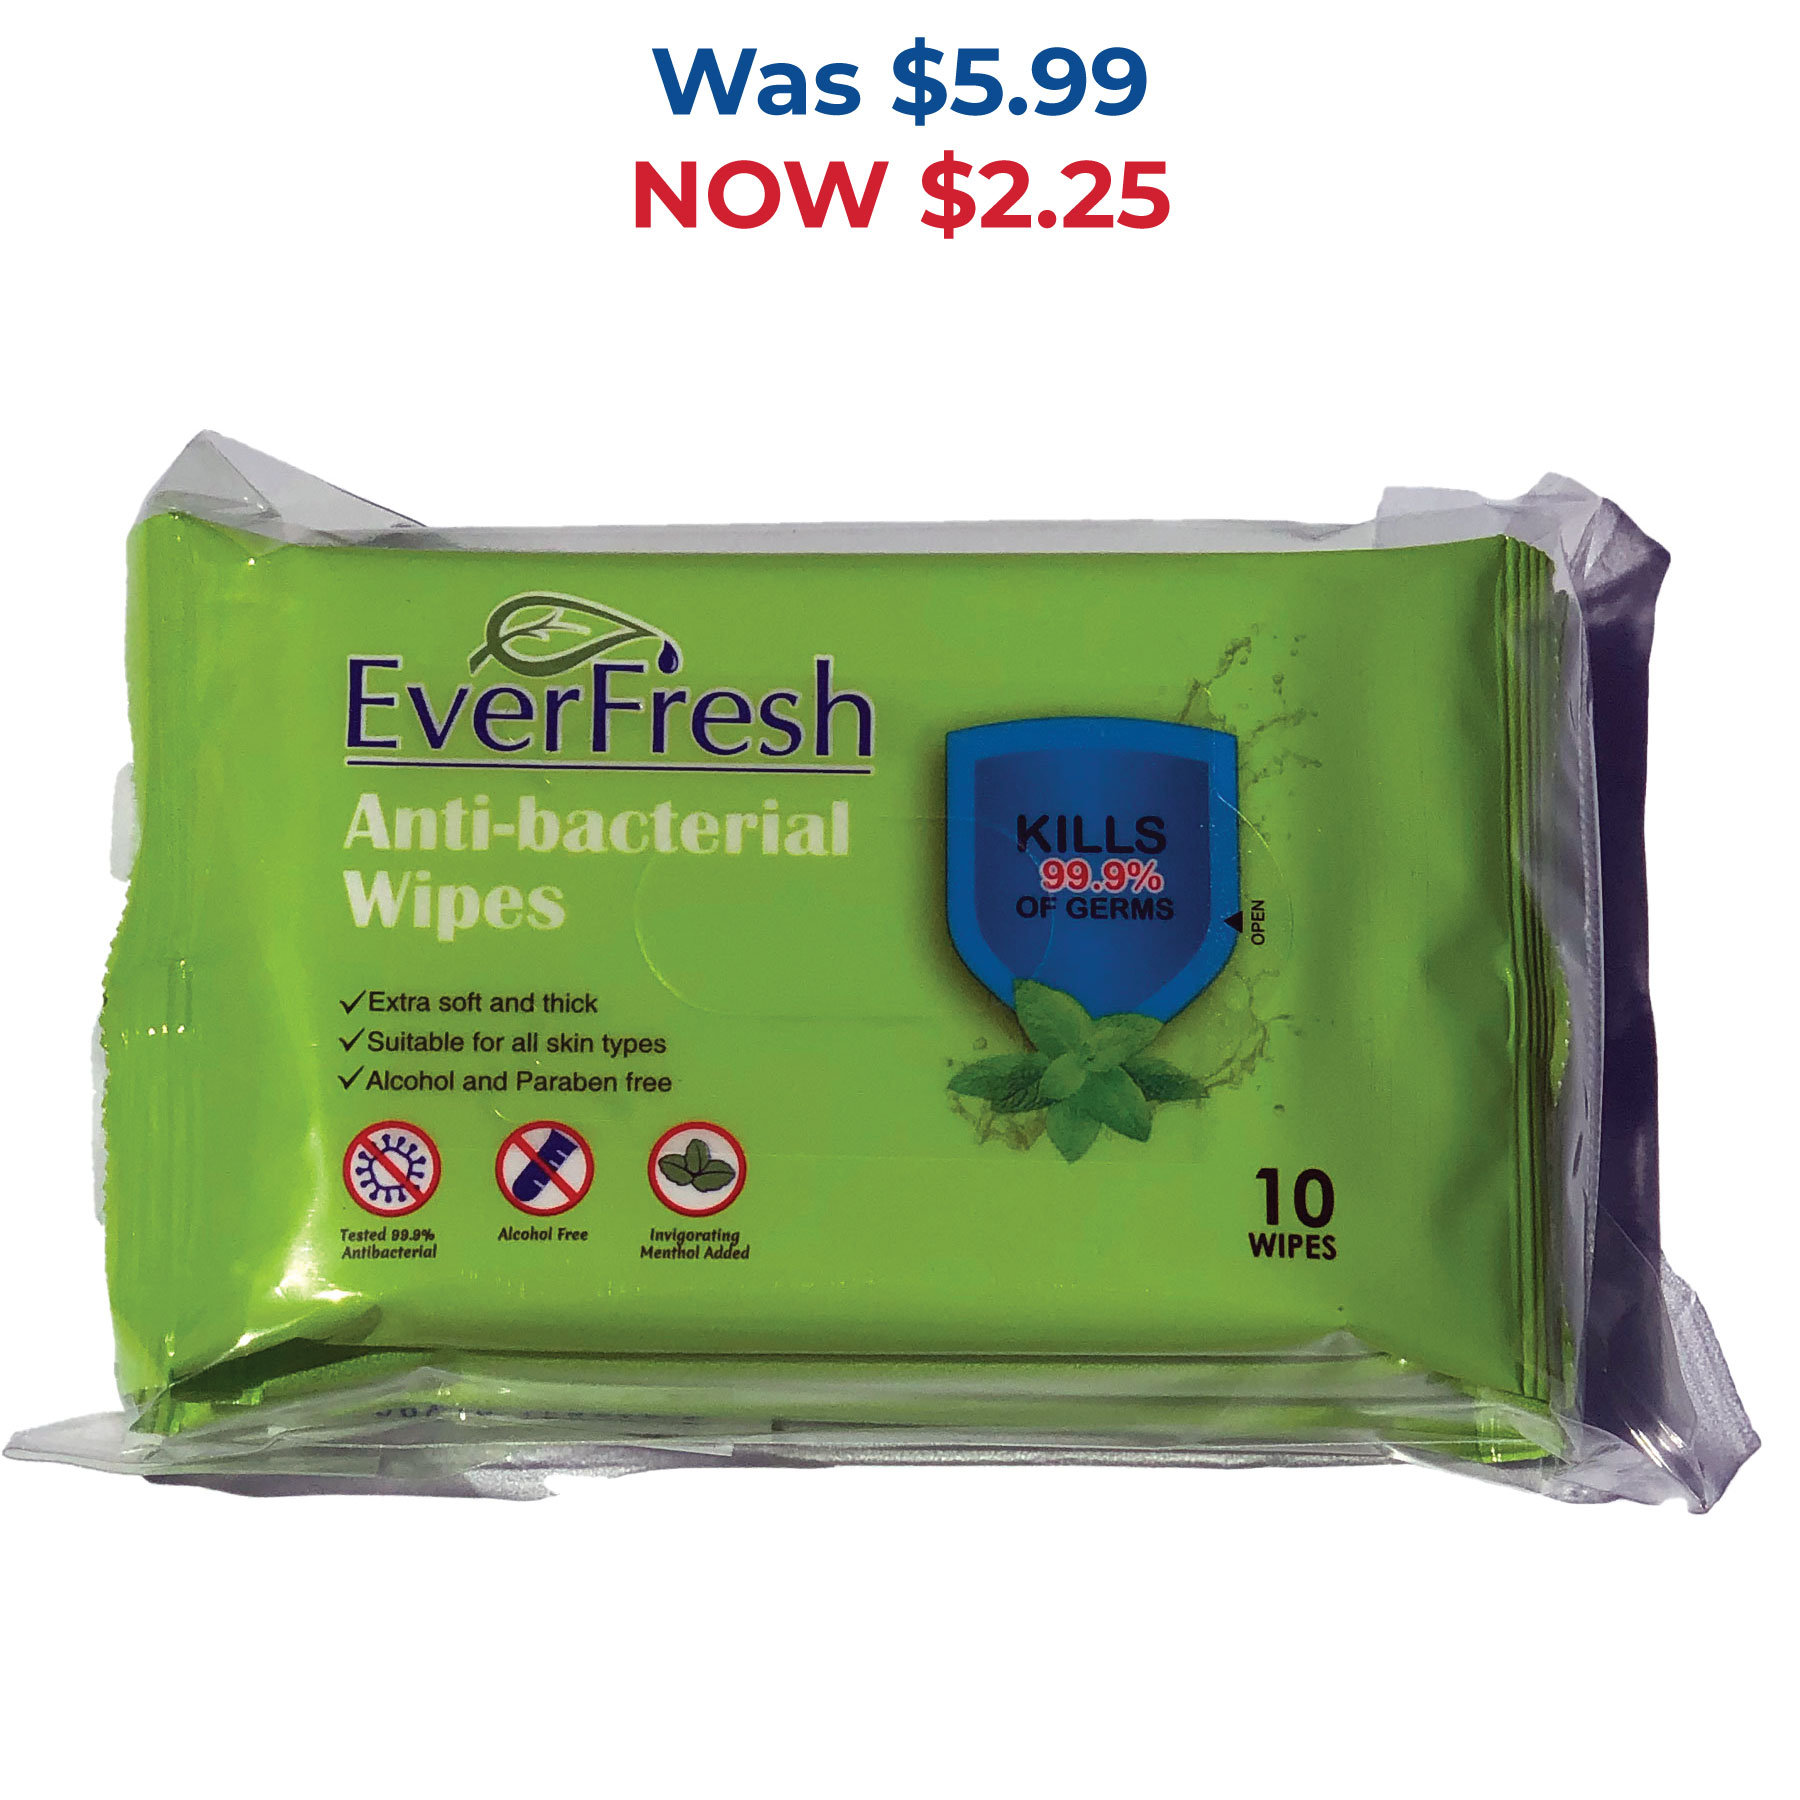 In Stock: Alcohol Free Anti-Bacterial Wipes - 3 Packs of 10 COVID,COVID-19,SARS,Virus,Viruses,Coughs,Safety,Sanis,Wipes,Cleaners,Antibacterials,